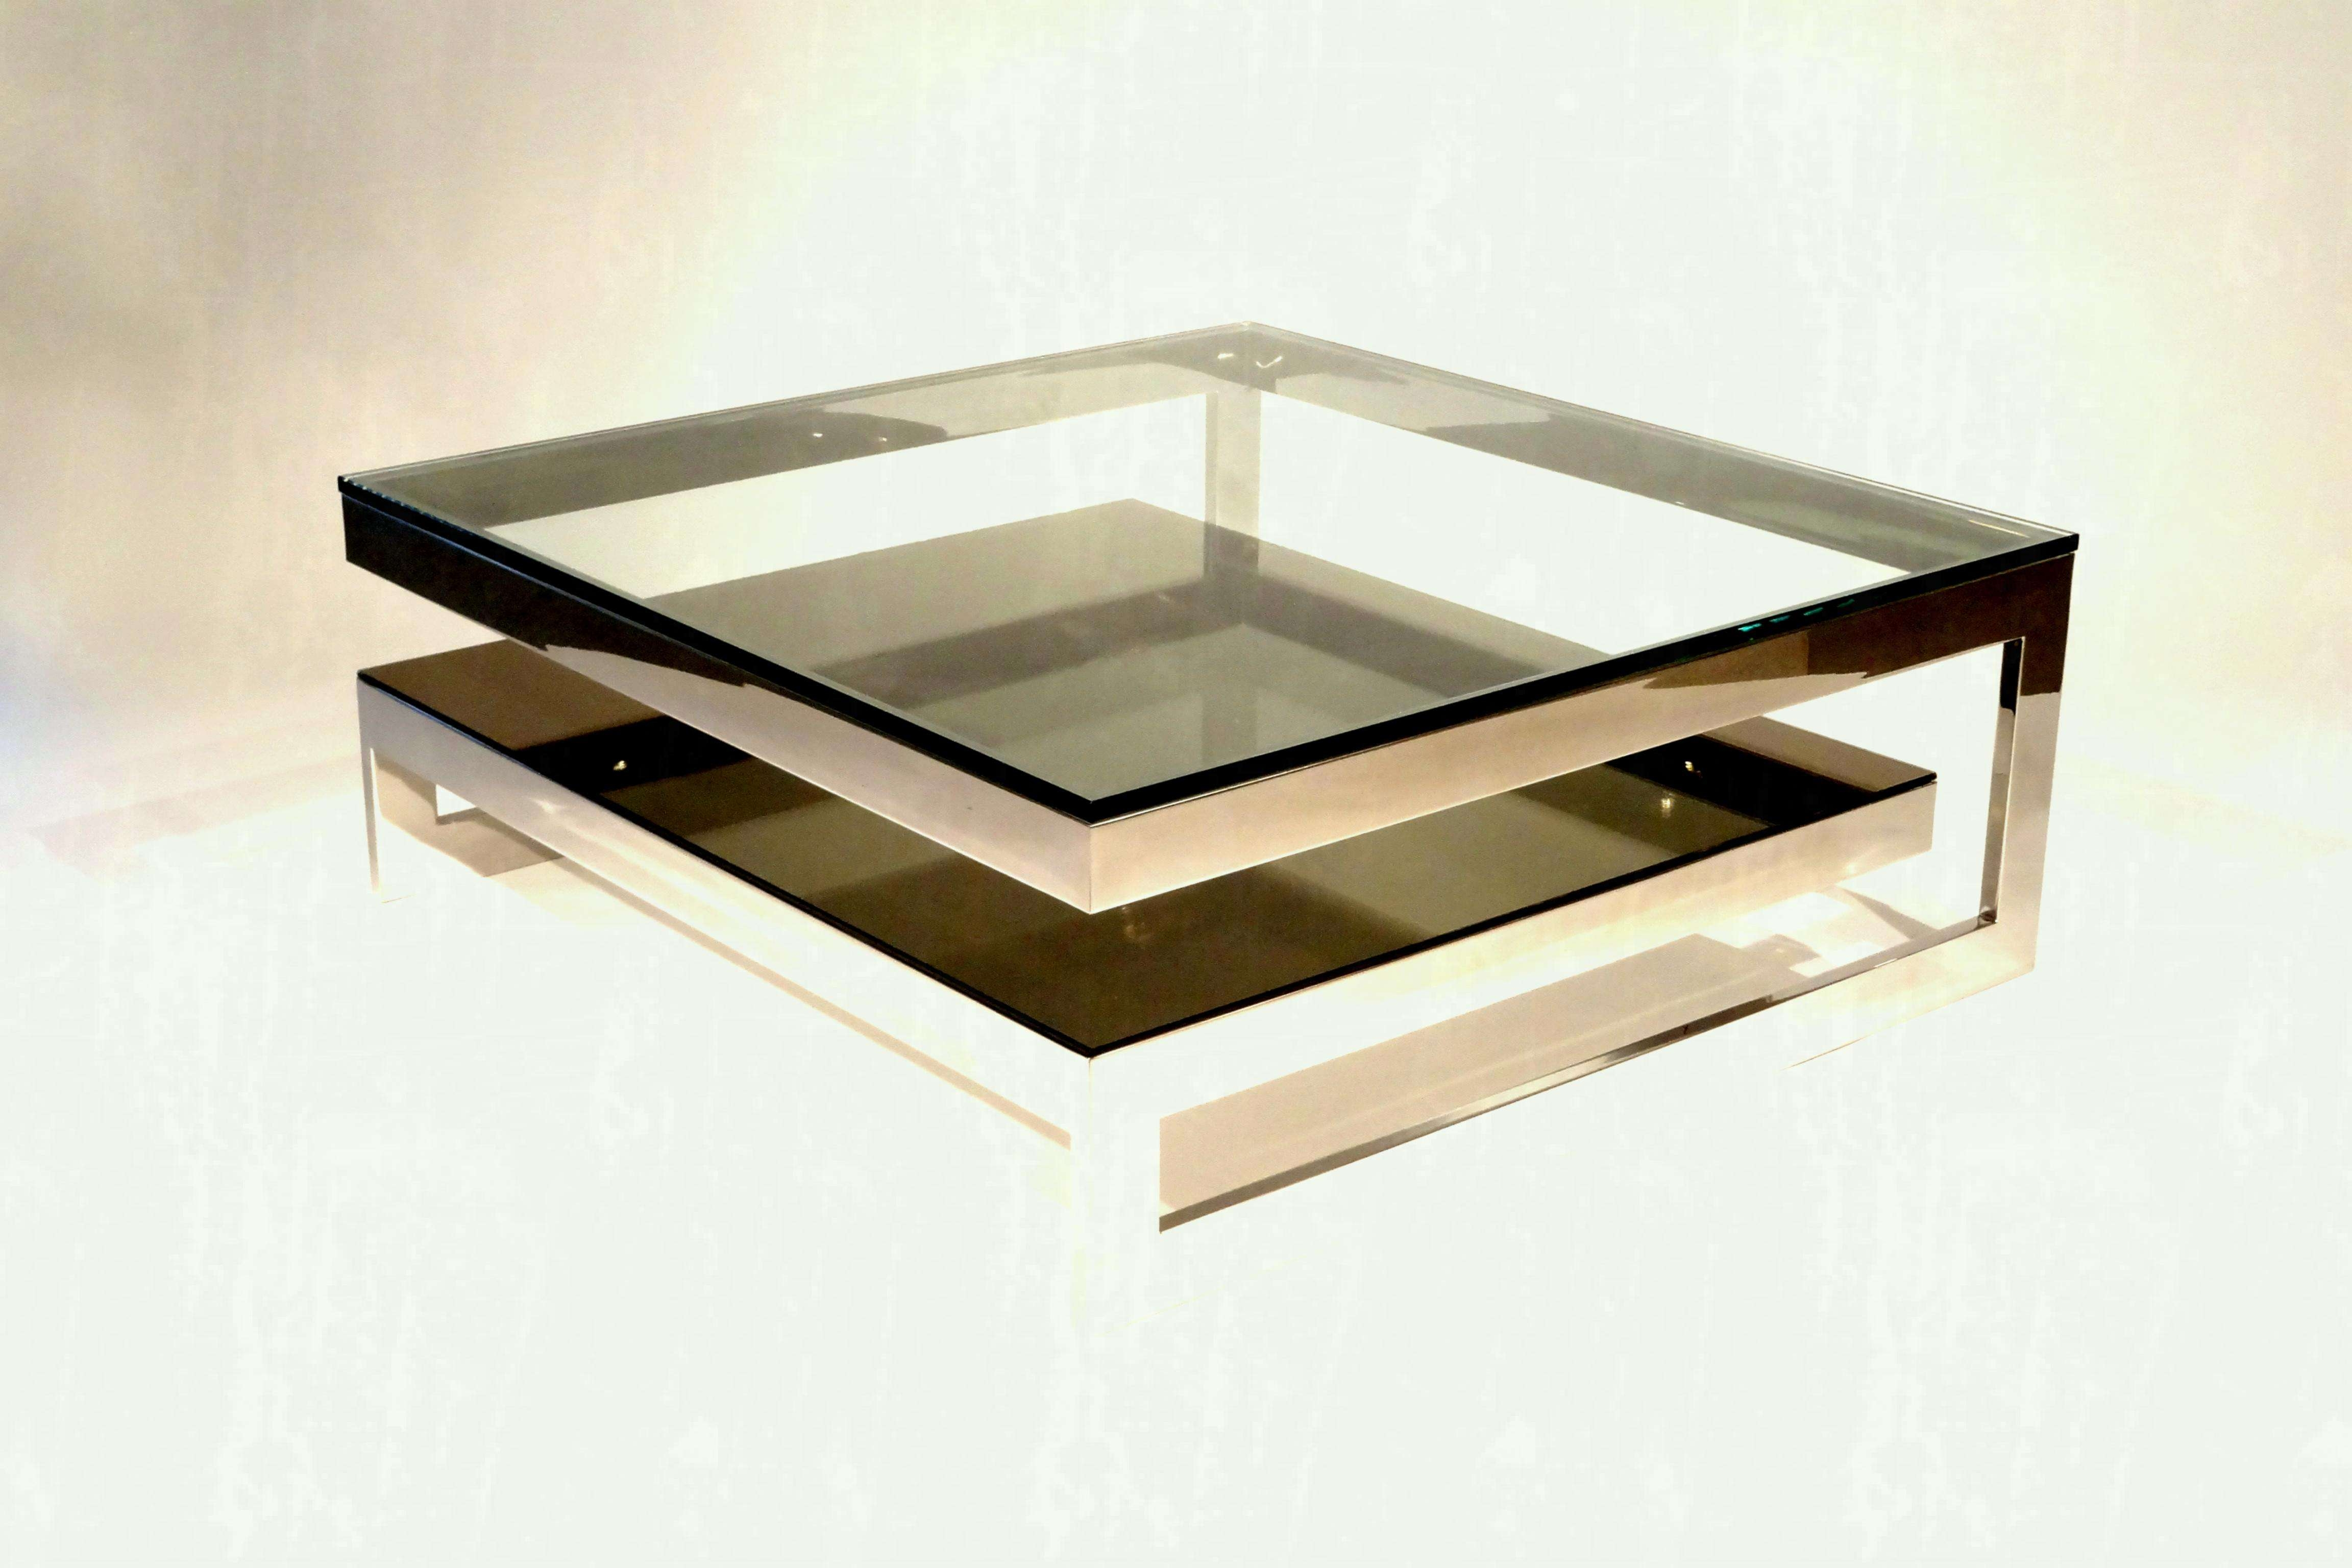 Unique Shape Stainless Steel And Tempered Glass Coffee Table Throughout 2018 Unique Glass Coffee Tables (View 13 of 20)